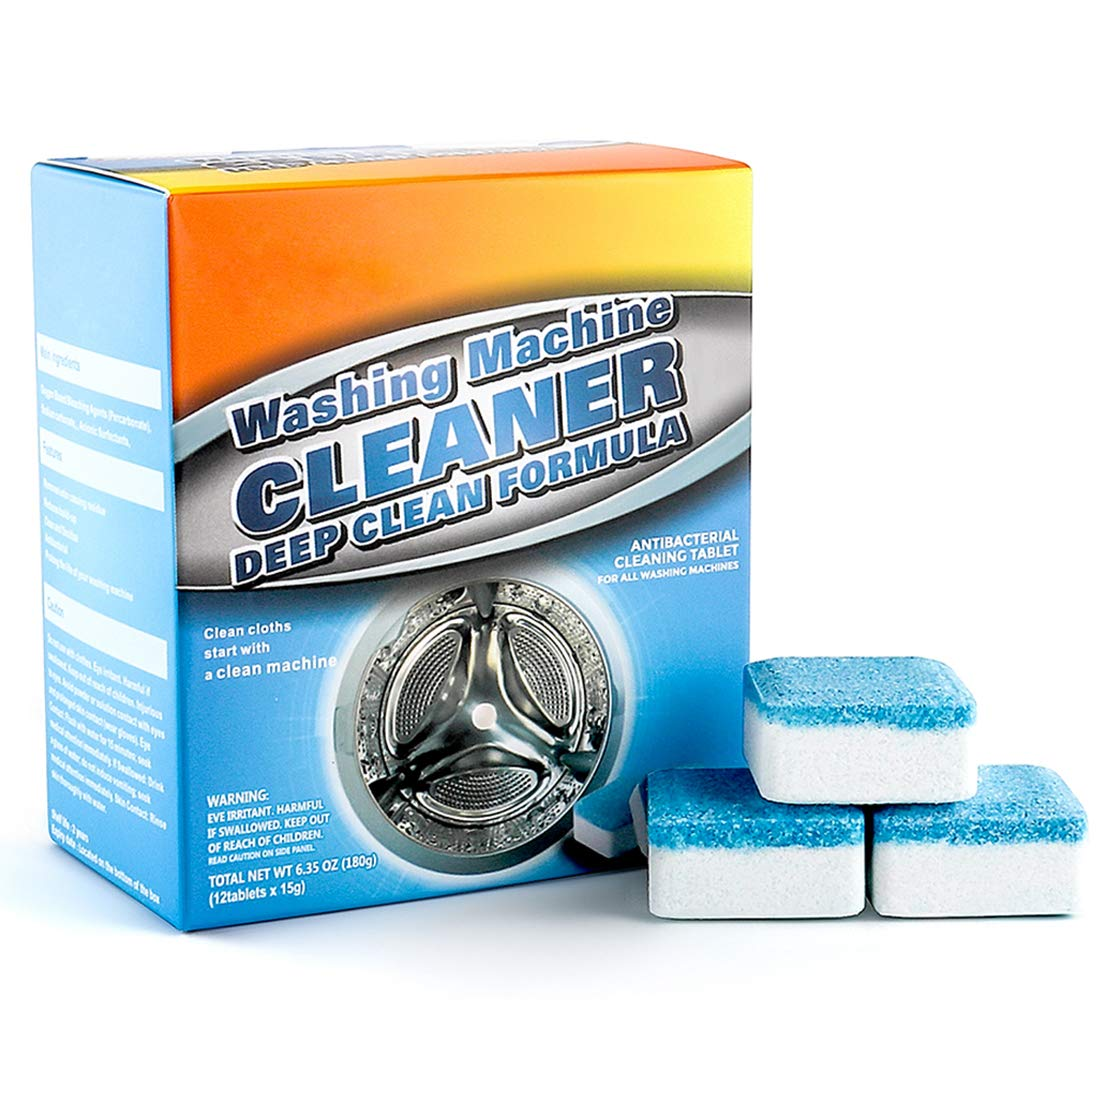 12 Pieces Washing Machine Cleaner - Dahoo Washer Machine Cleaner Effervescent Tablets, Solid Deep Cleaning Tablets for All Machines